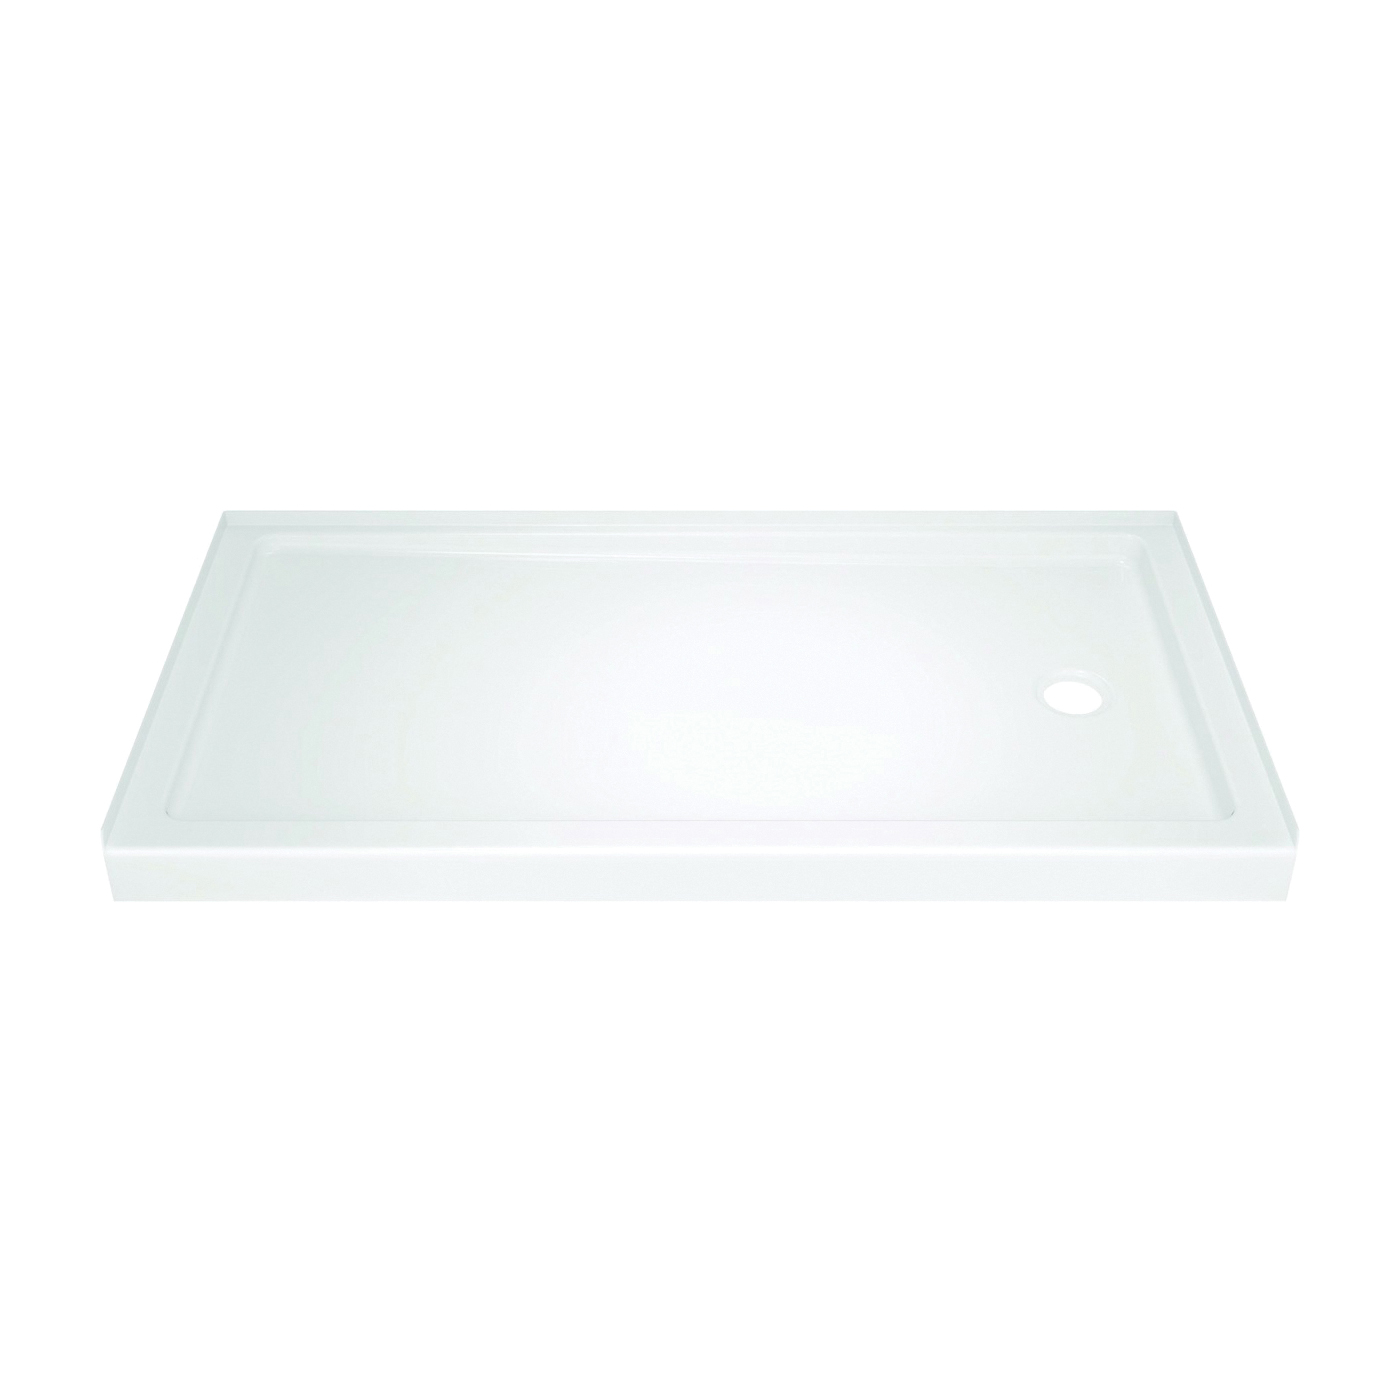 Picture of DELTA 40094R Shower Base, 59.88 in L, 30-3/4 in W, 3-1/2 in H, Acrylic, White, Stud Installation